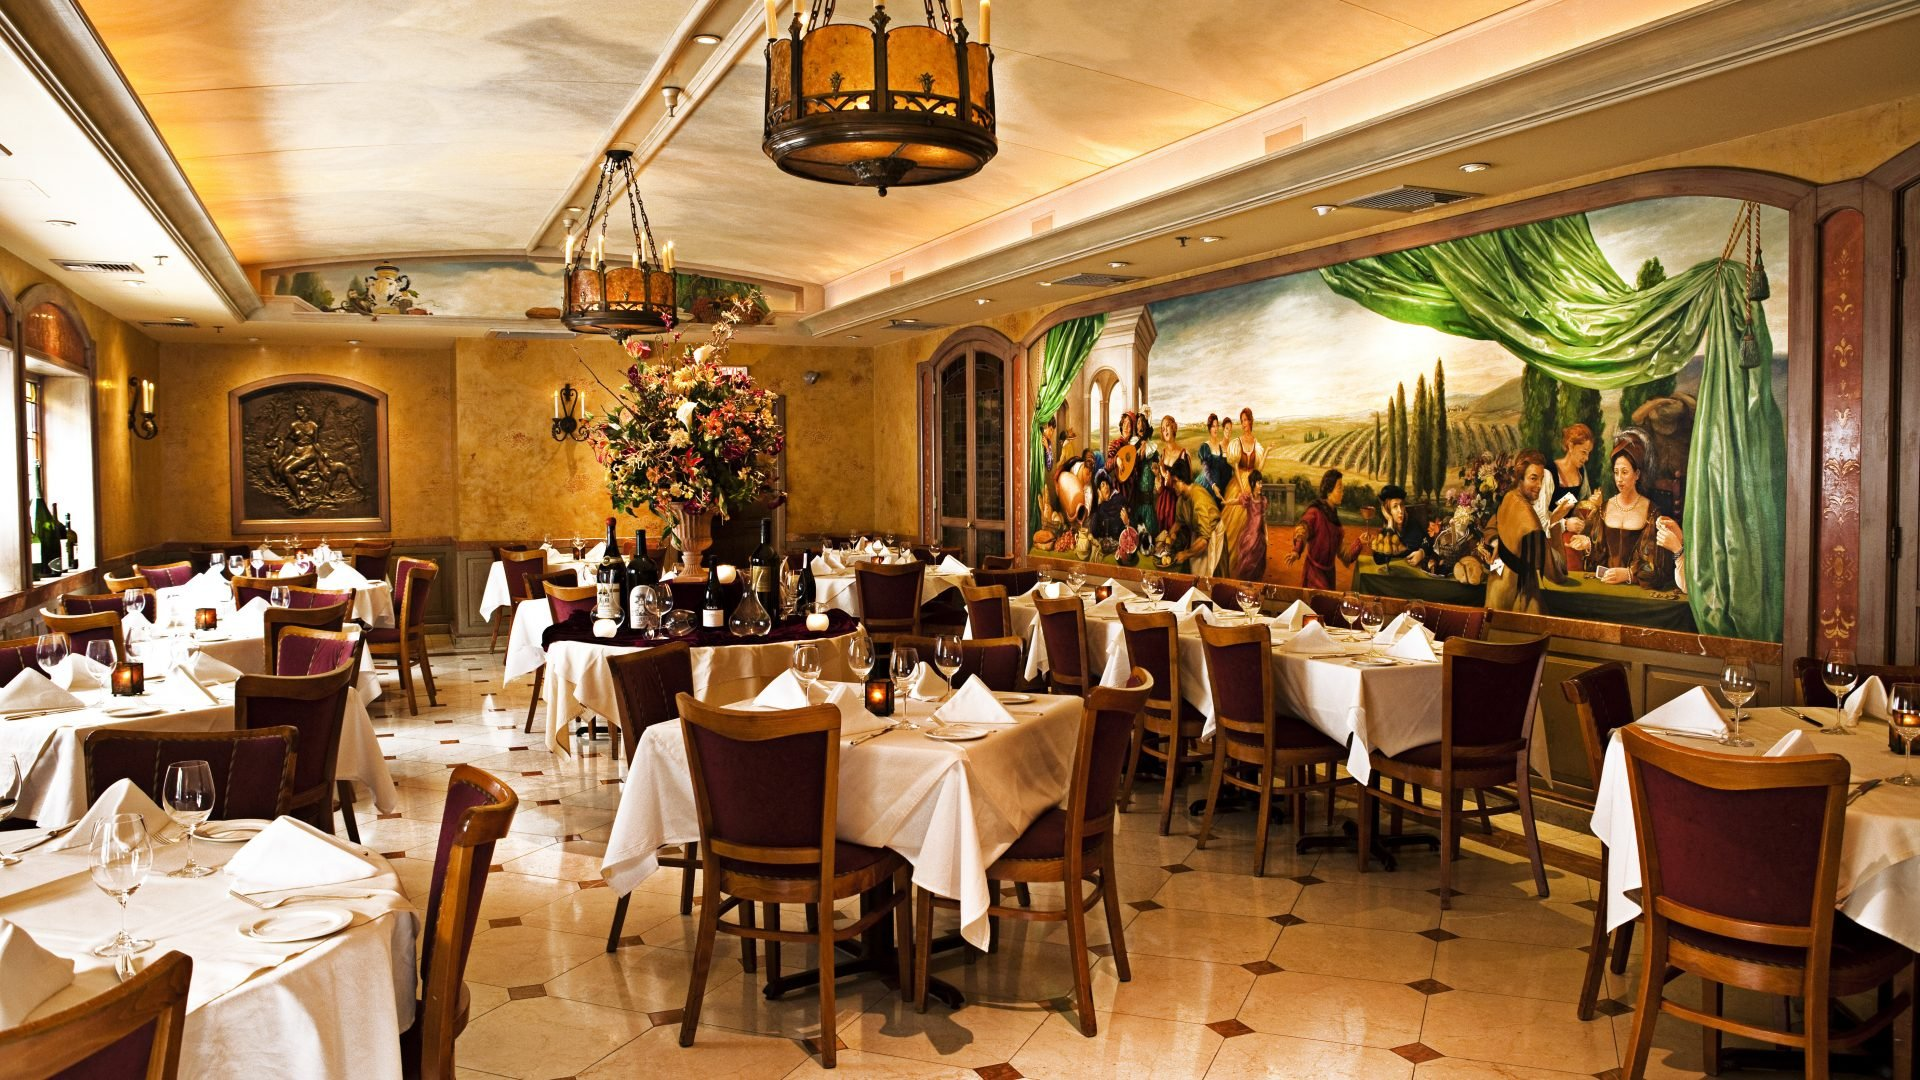 Great Restaurant Wallpaper Full Hd Pictures HD Wallpapers Download Free Images Wallpaper [1000image.com]